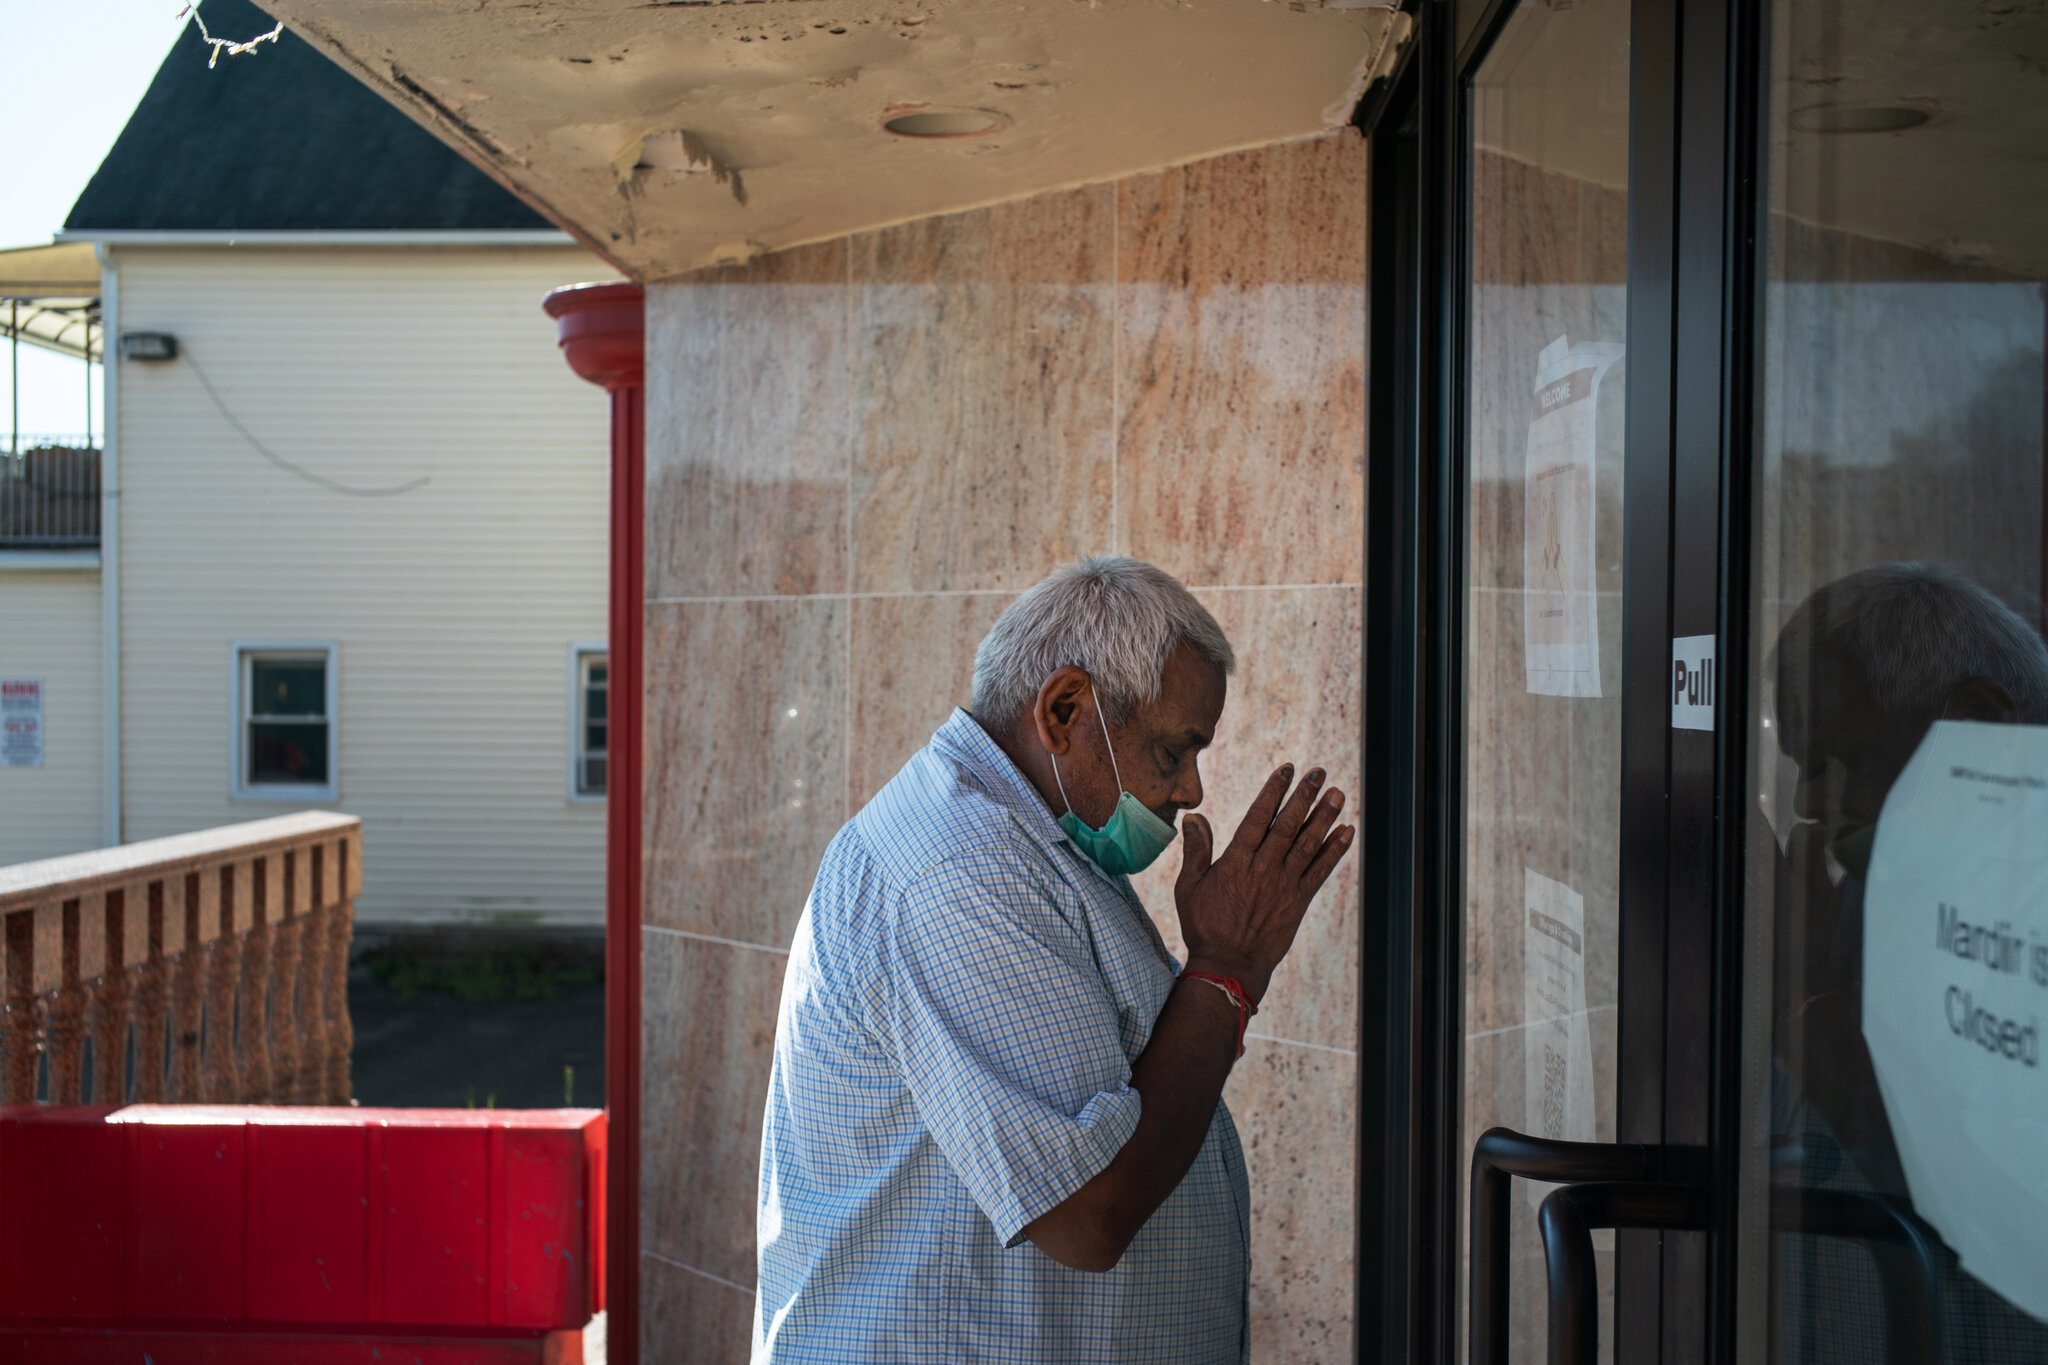 Natvarbahi stops to pray and thanks all pantry nonprofit organizations like Masbia for sharing free food with him and other New Yorkers. The photo was taken by Todd Heisler of the New York Times.